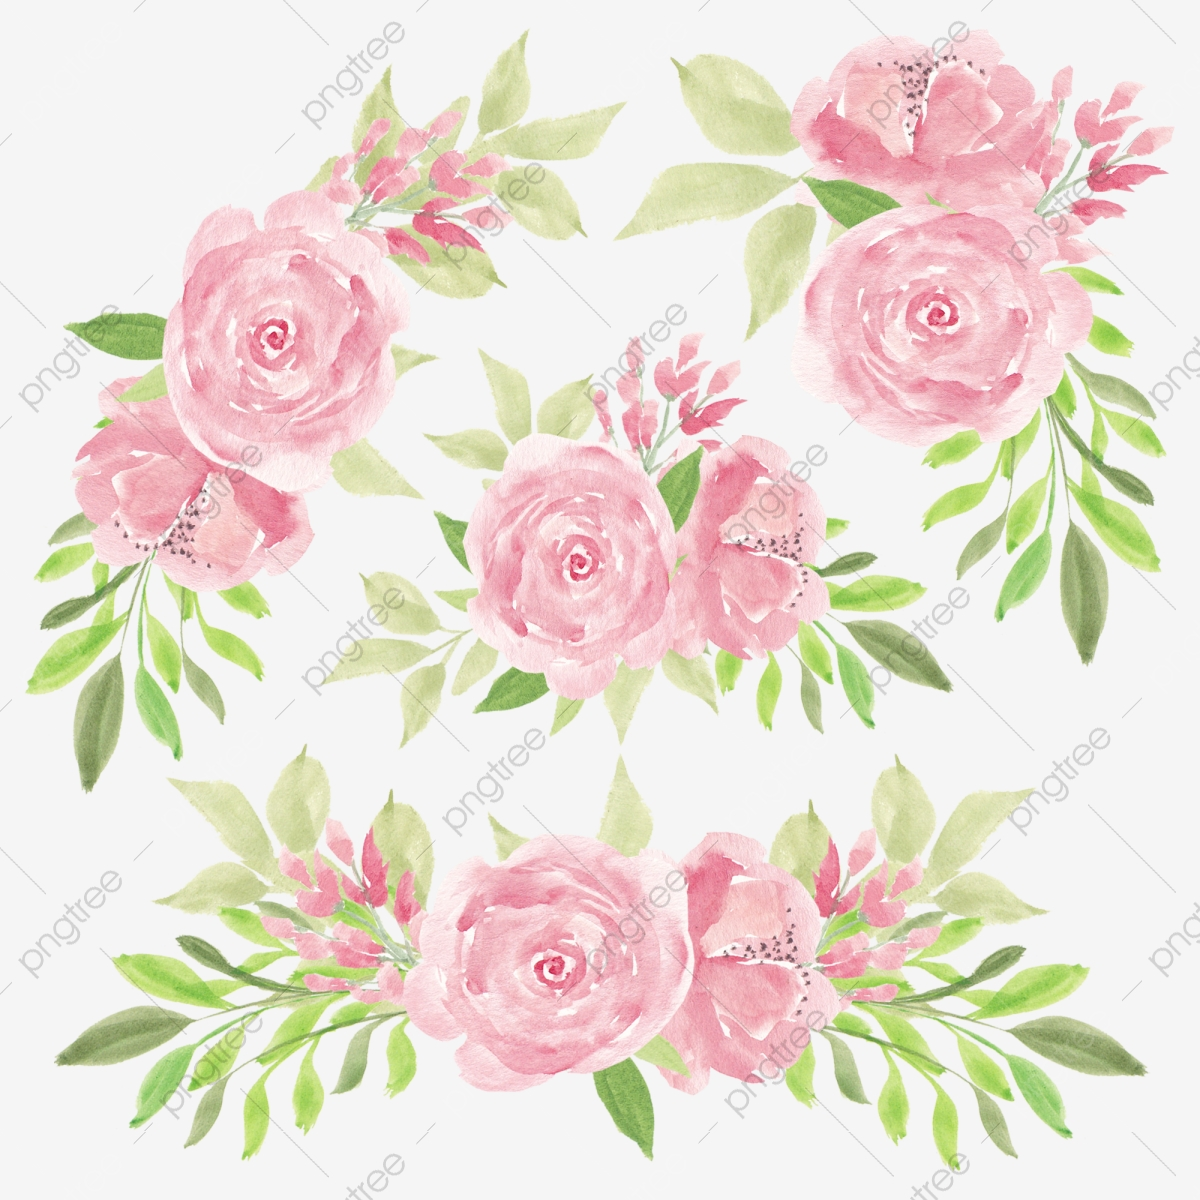 Flower Bouquet Png Images Vector And Psd Files Free Download On Pngtree